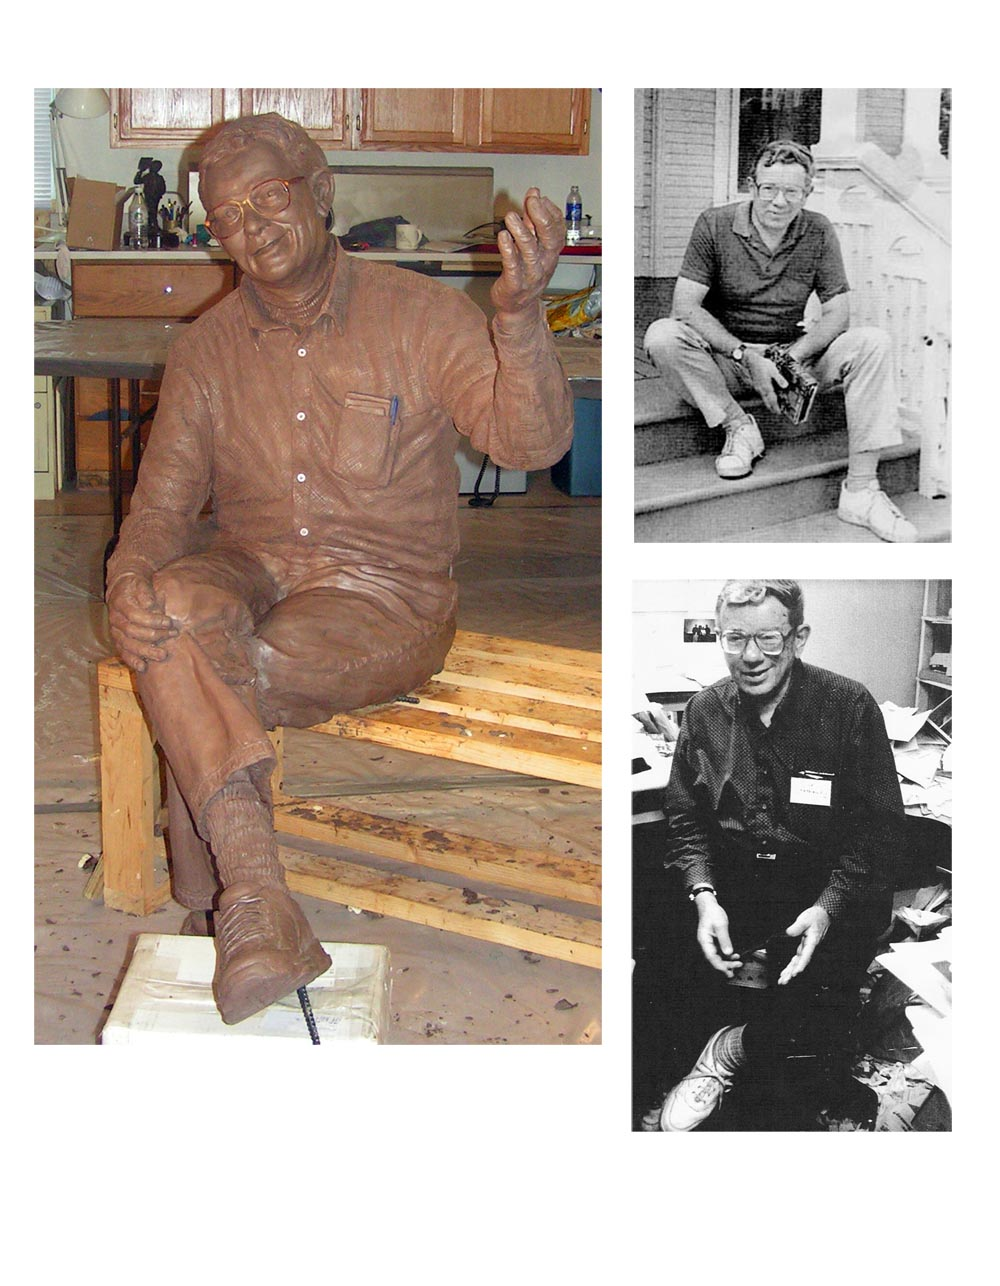 Clay sculpture of Richard Hathaway